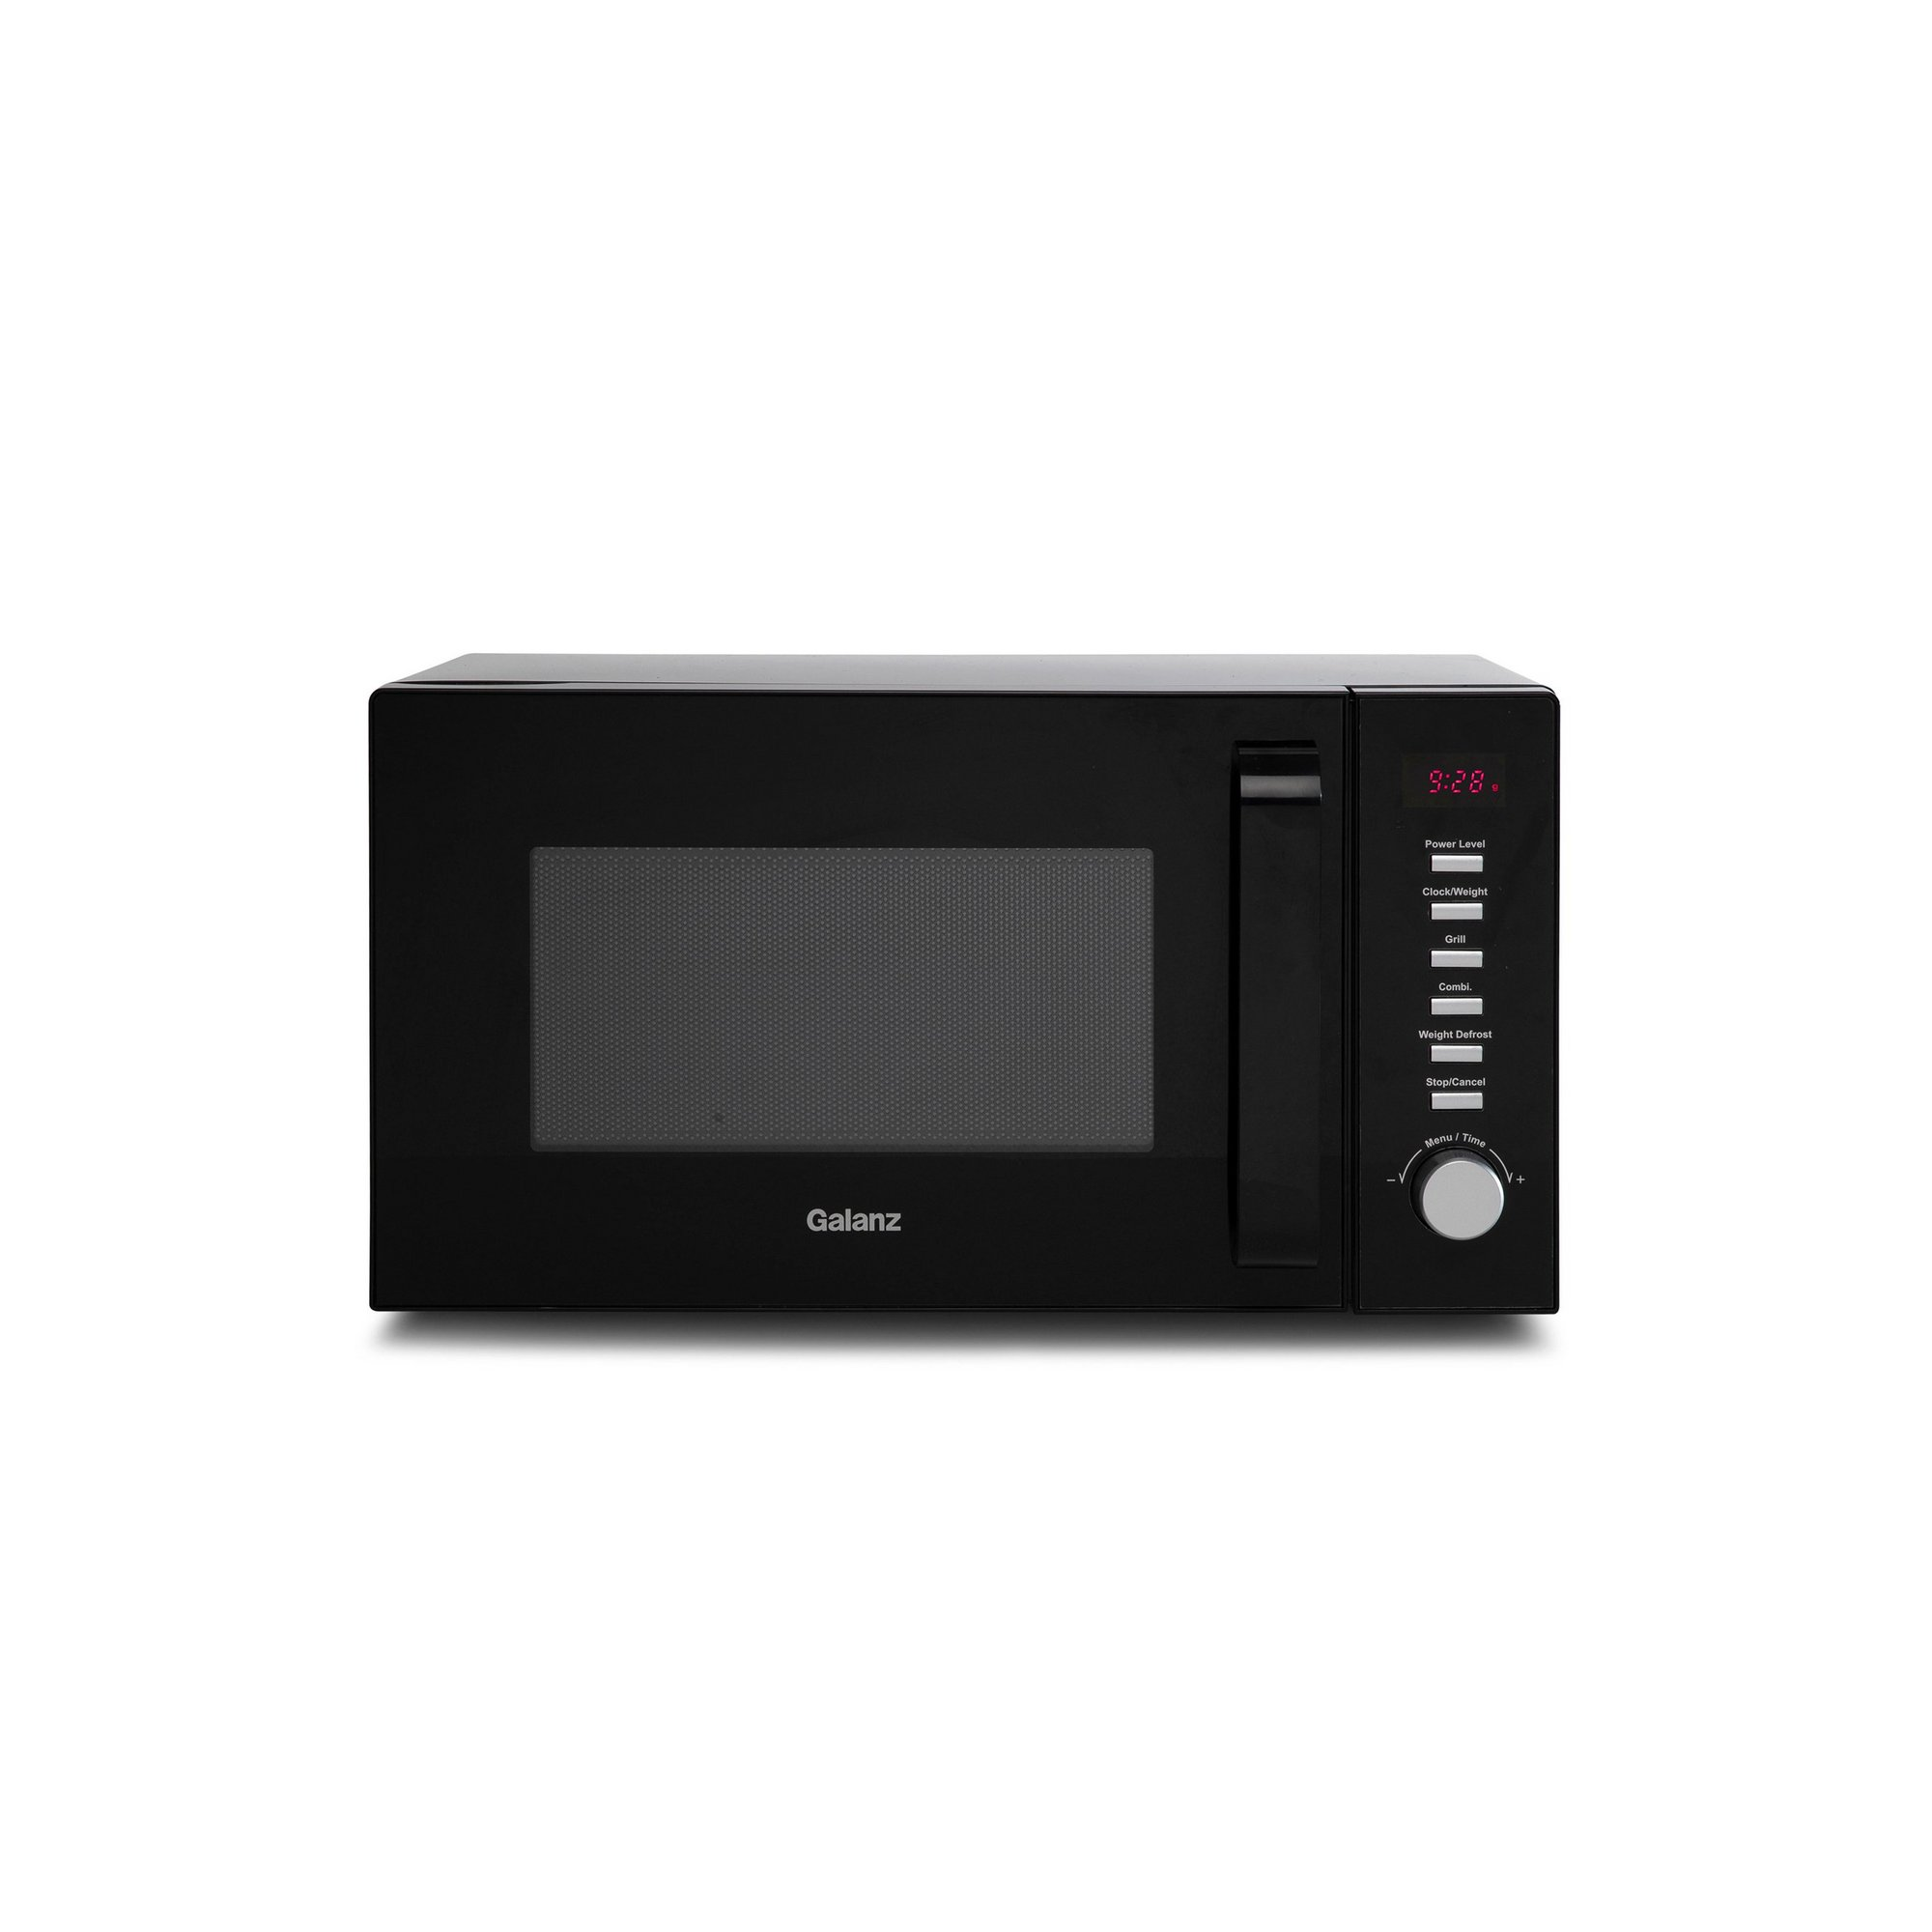 Image of Galanz 23L 900W Microwave with 1000W Grill